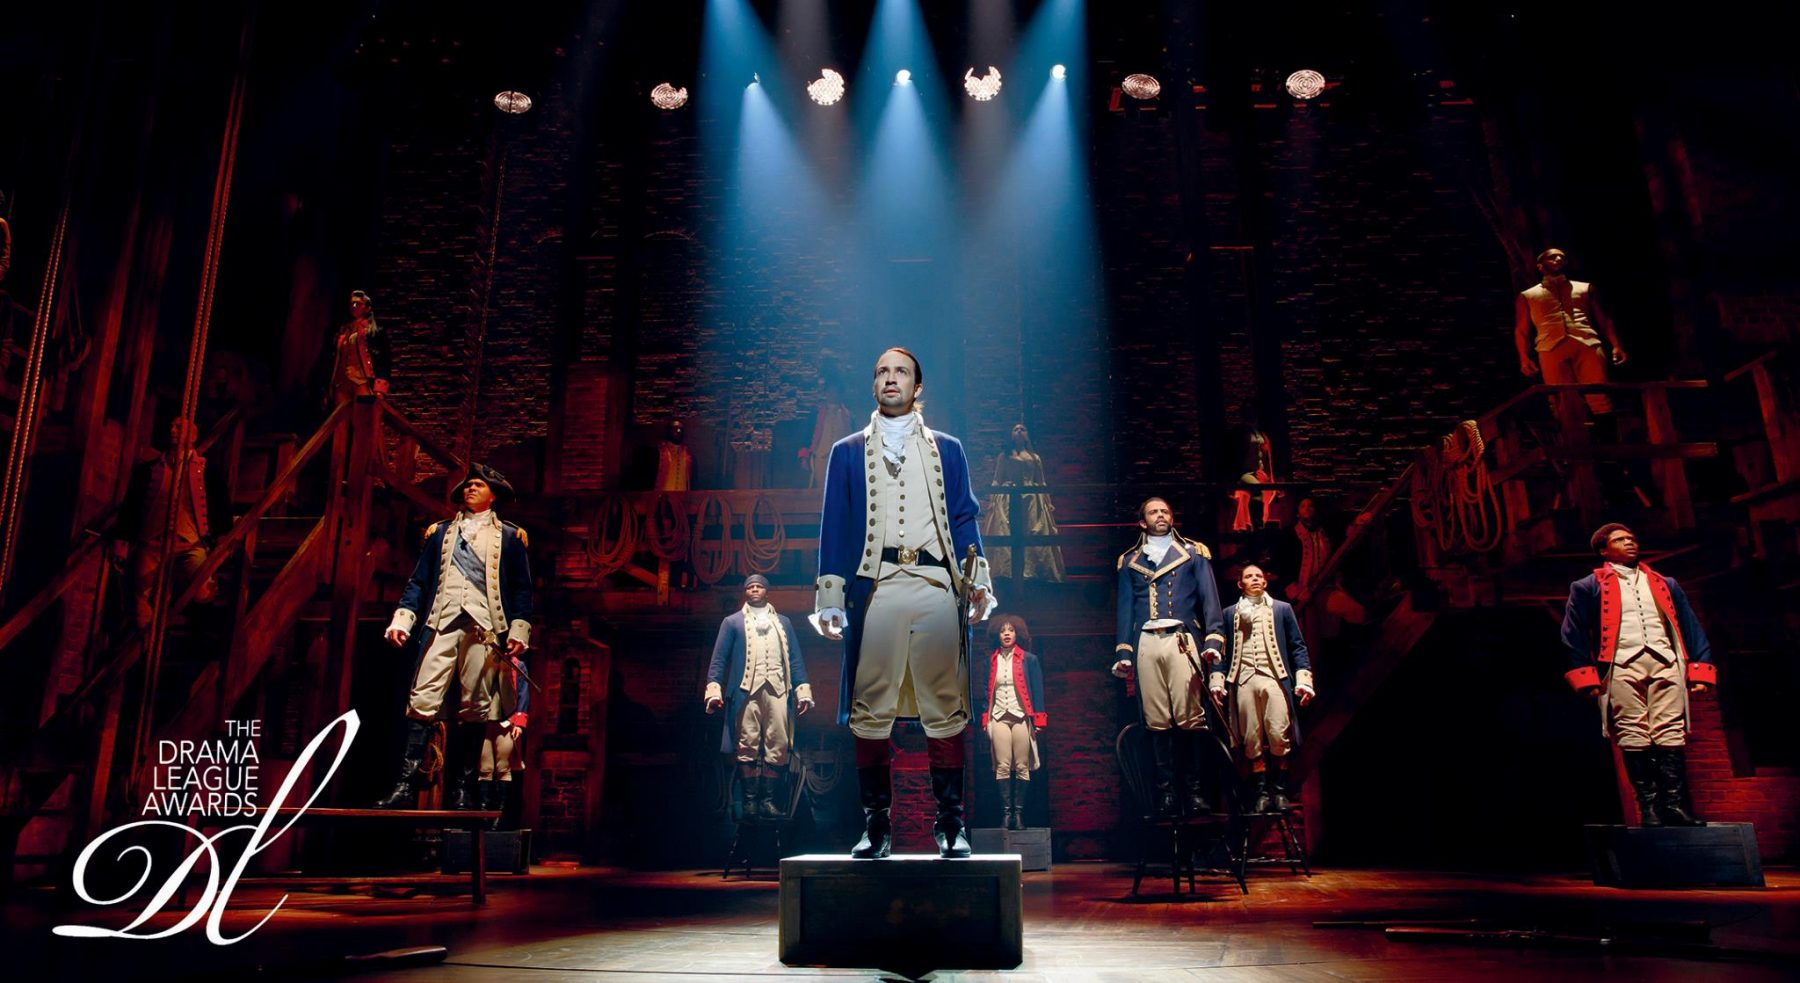 Hamilton musical in talks to come to Toronto stage